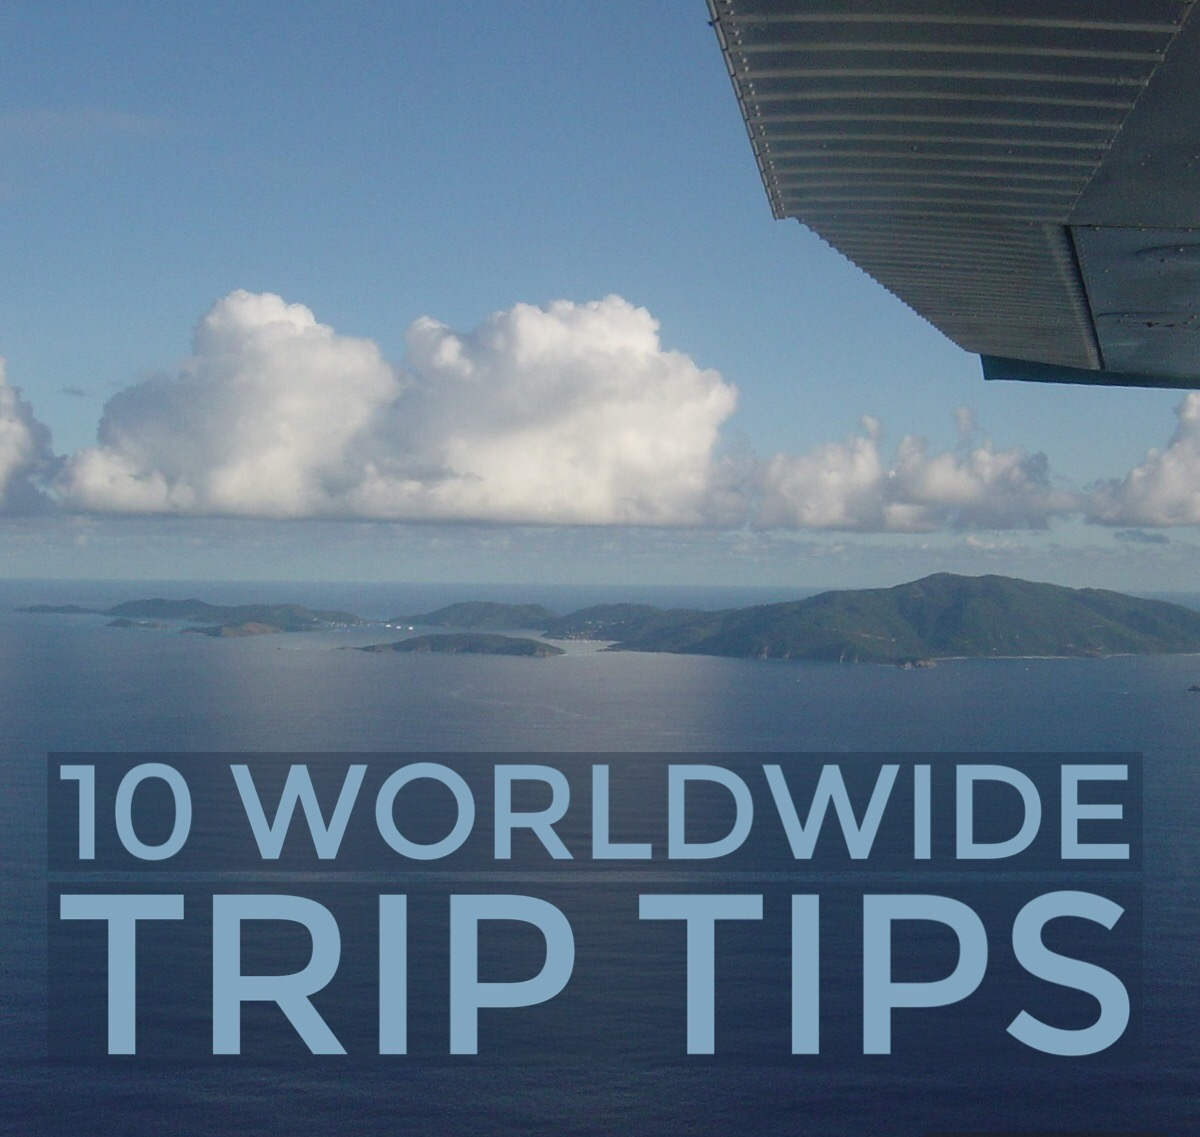 10 Worldwide Trip Tips from the Man